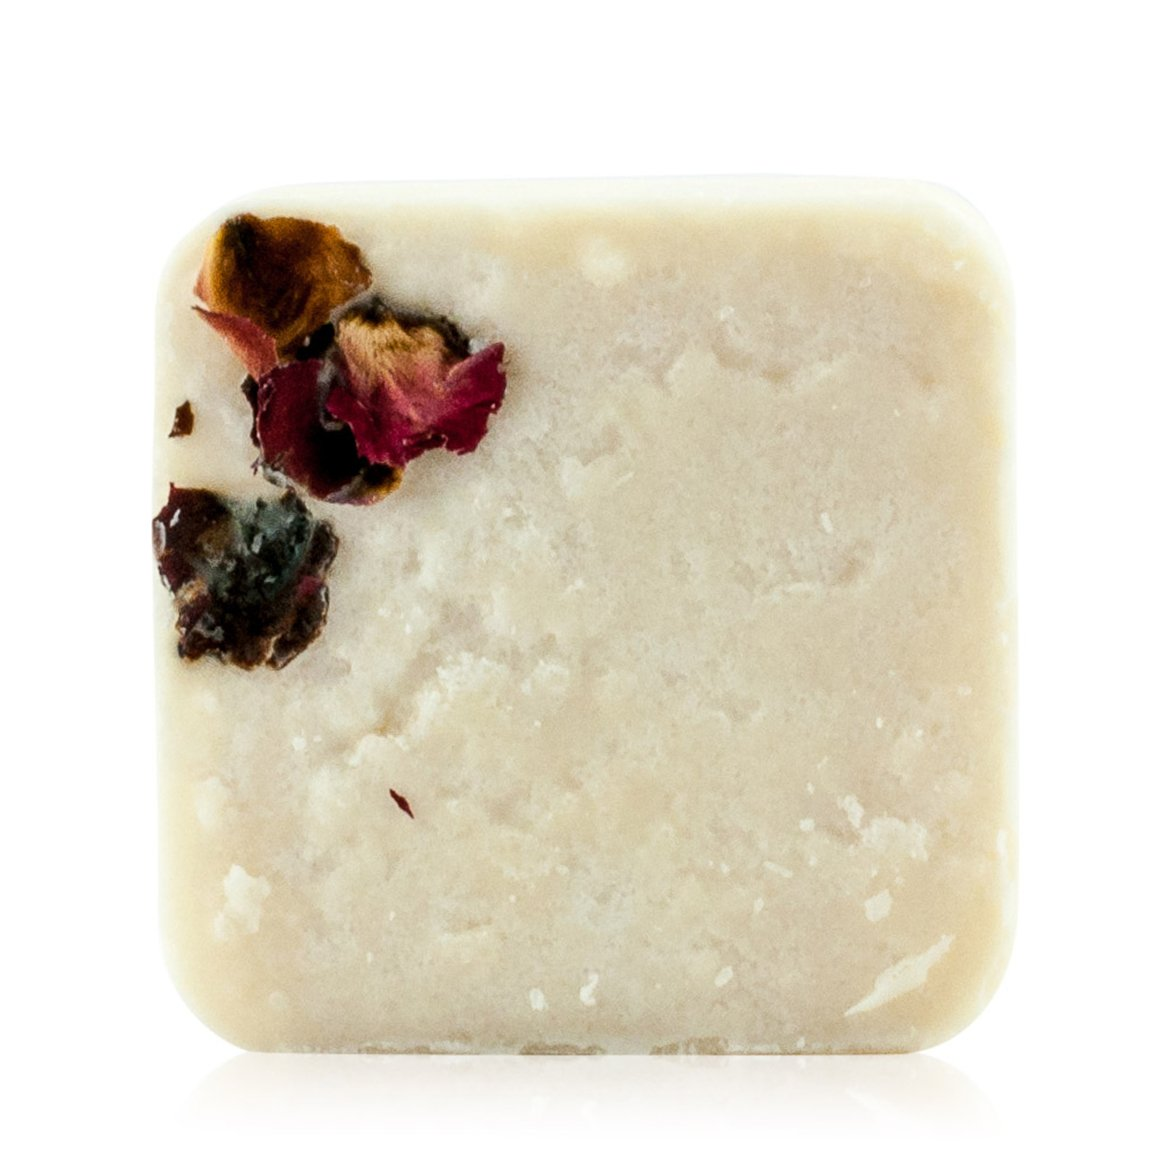 Natural vegan skincare 'Late Lounge' salt scrub body exfoliate decorated with rose petals handmade by WiDEYE in Rye.